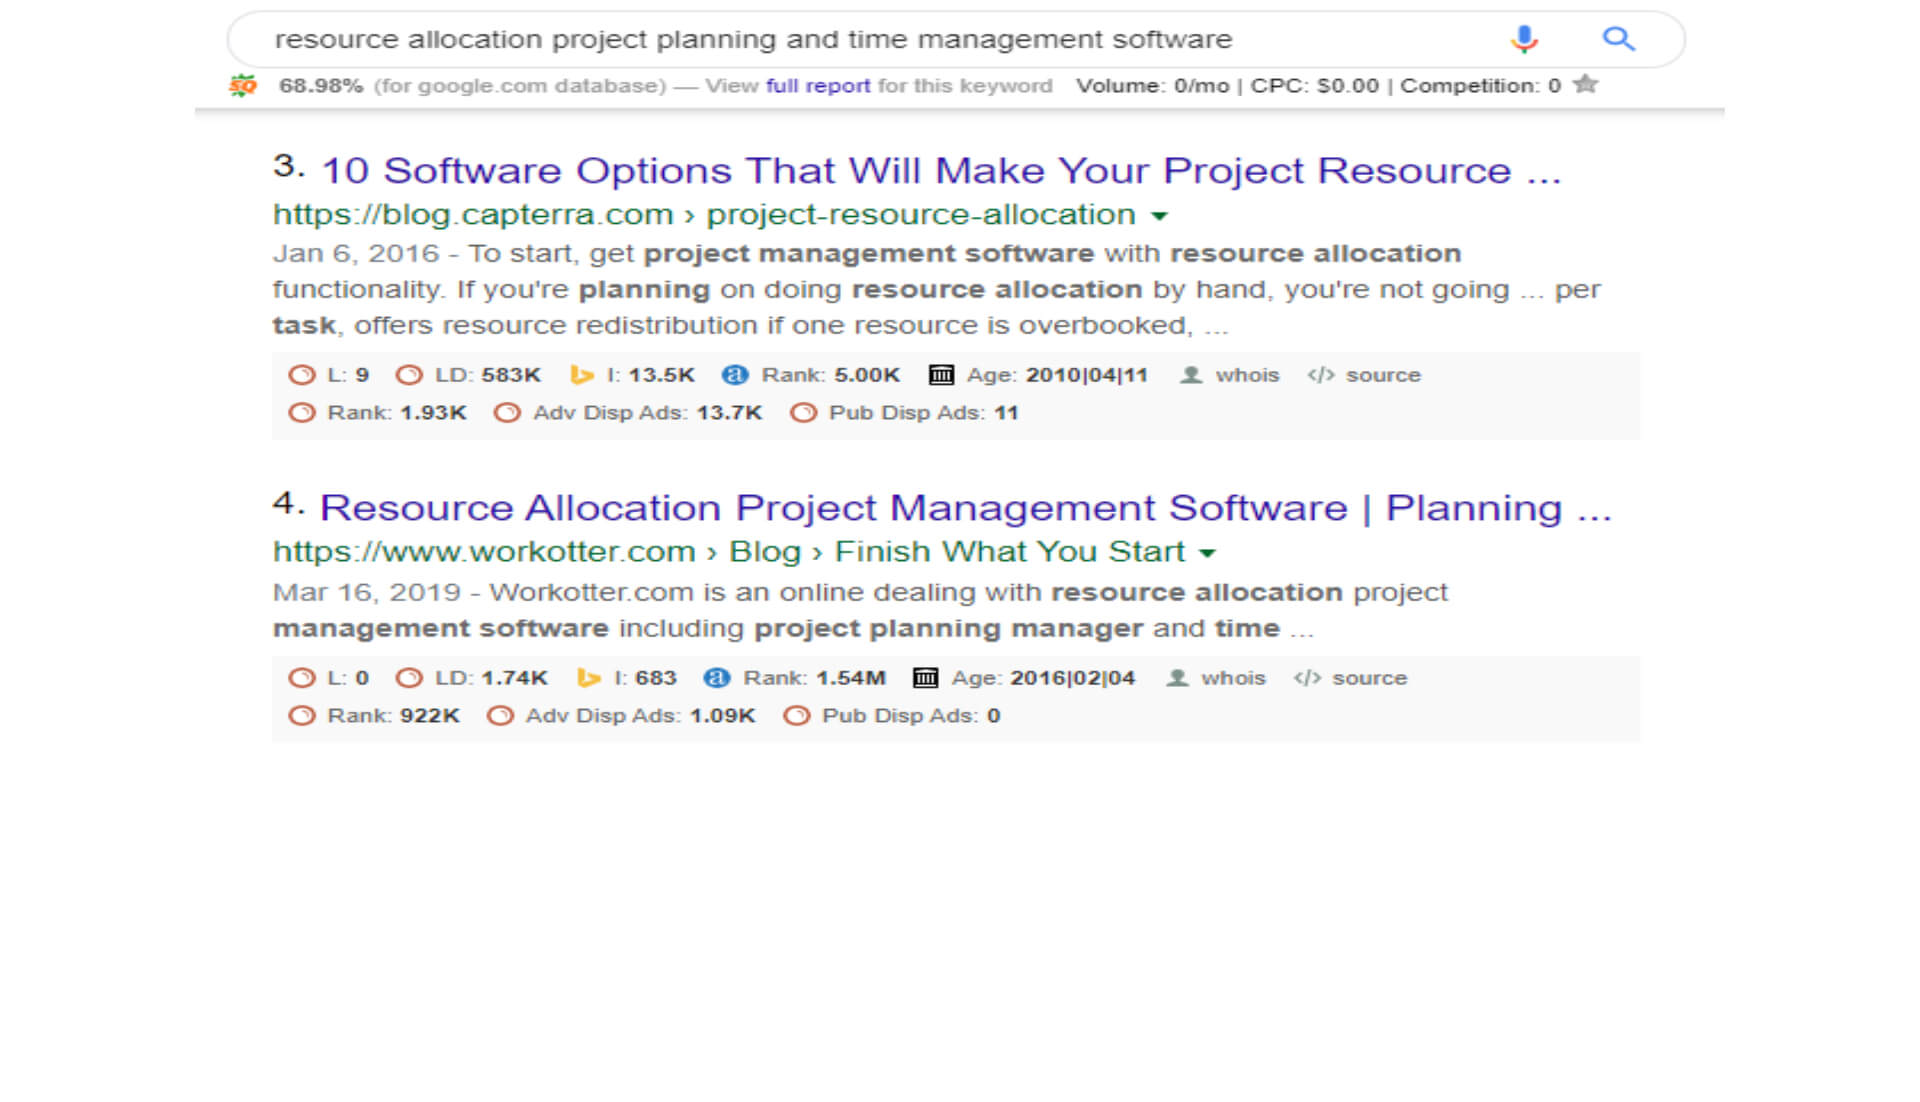 resource allocation project planning and time management software